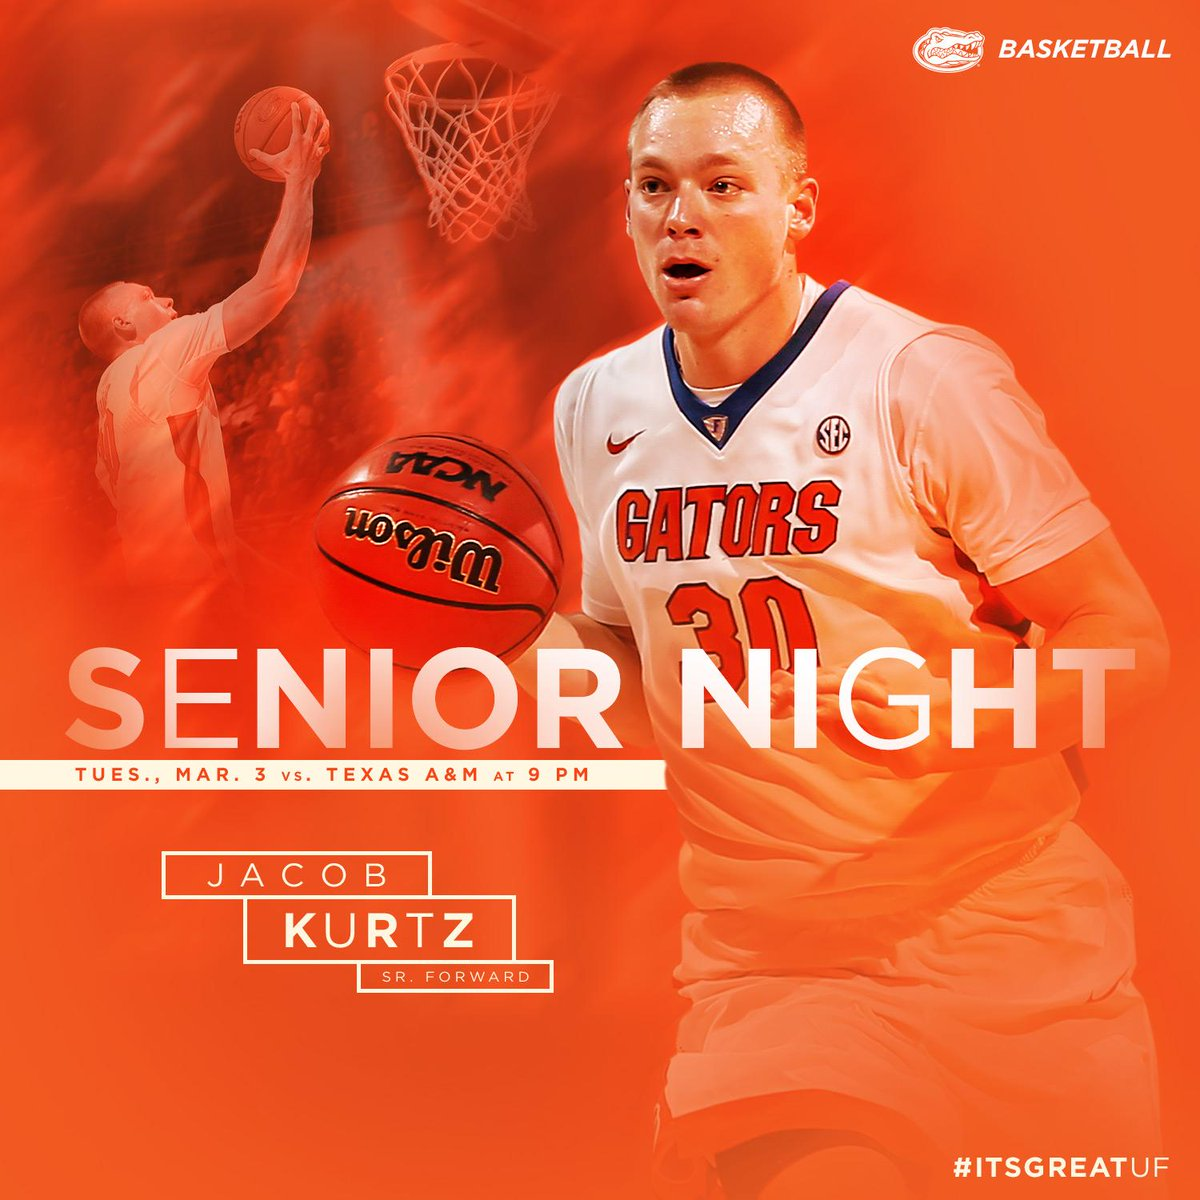 Thumbnail for UF Men's Basketball Senior Night 2015